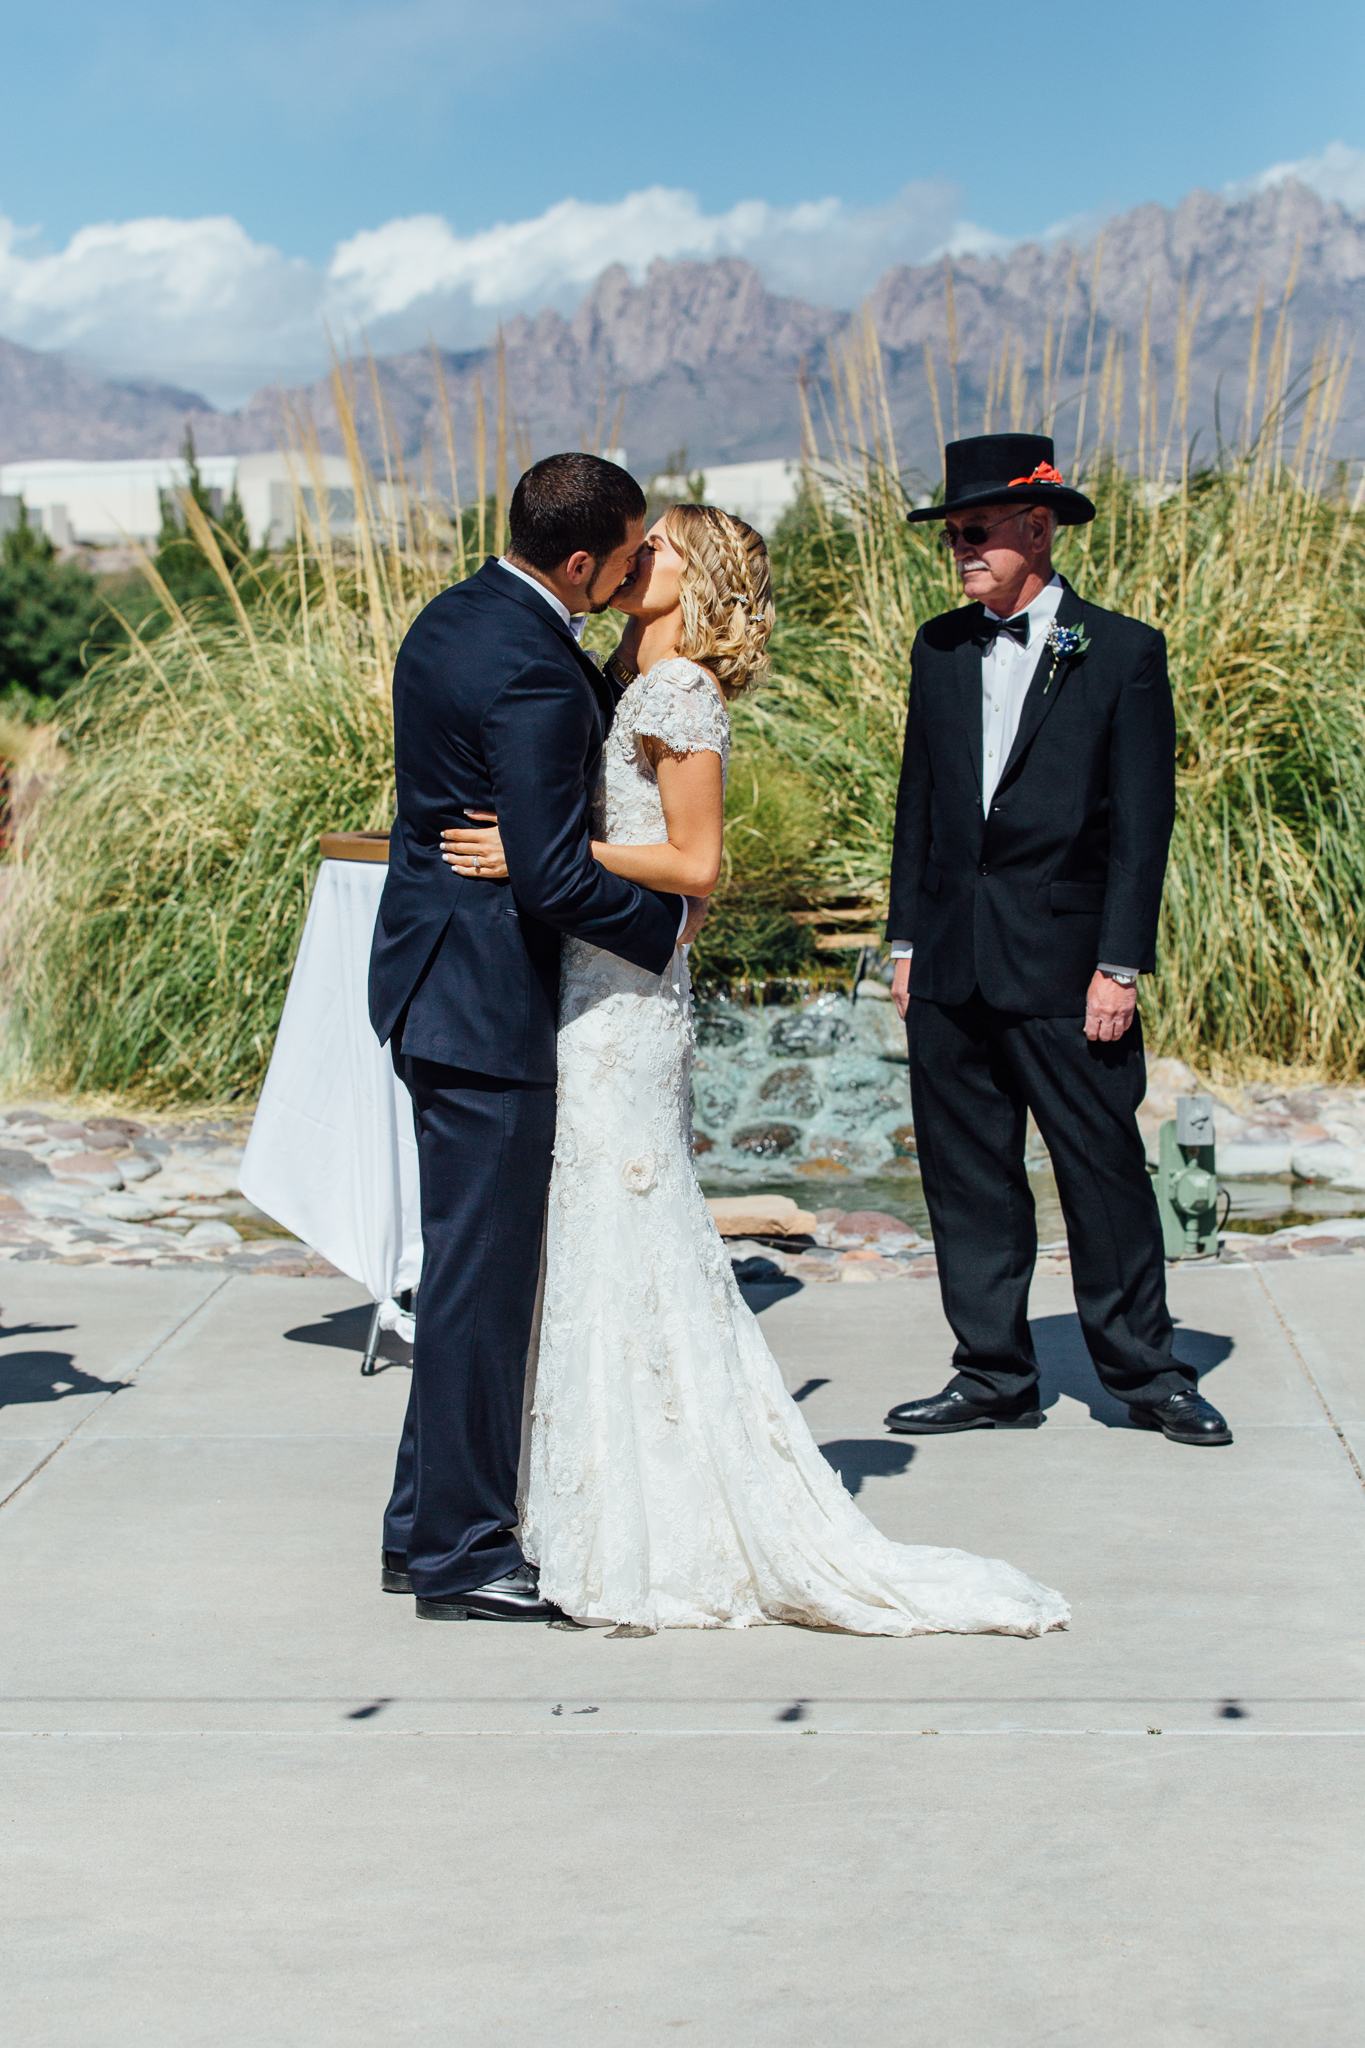 nm-farm-and-ranch-wedding-33.jpg